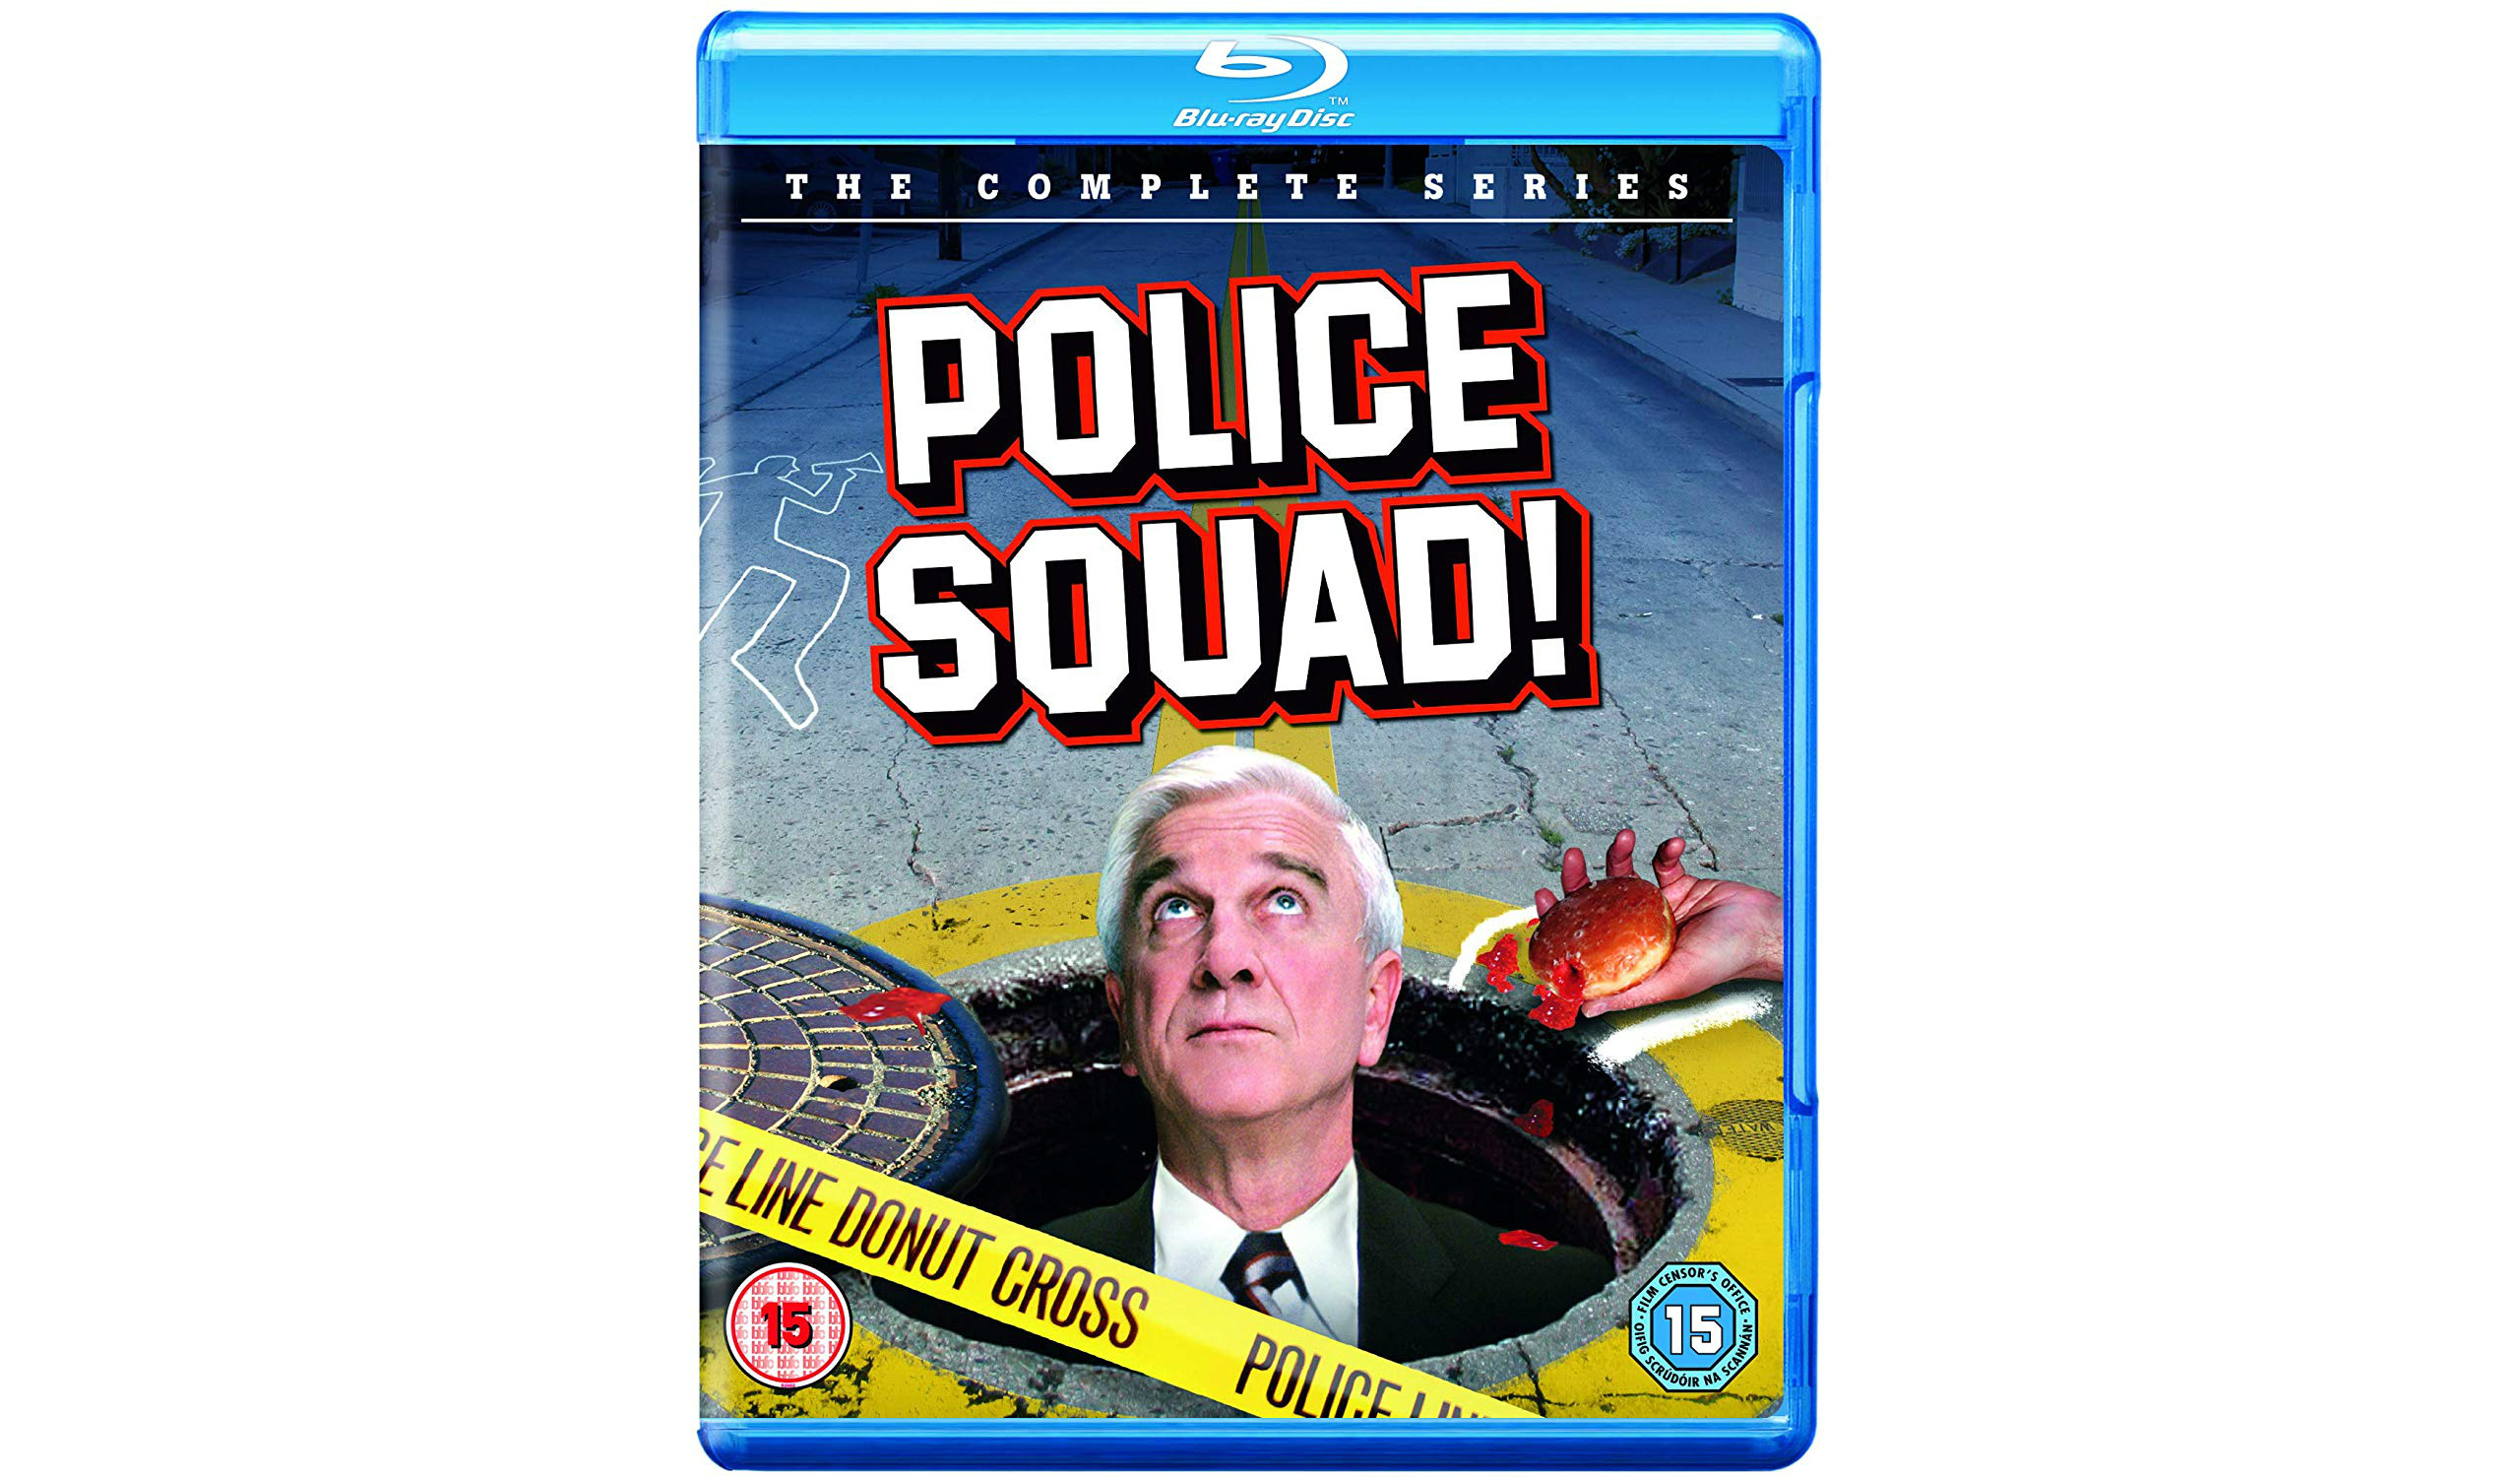 Police Squad: The Complete Series Blu-ray Review